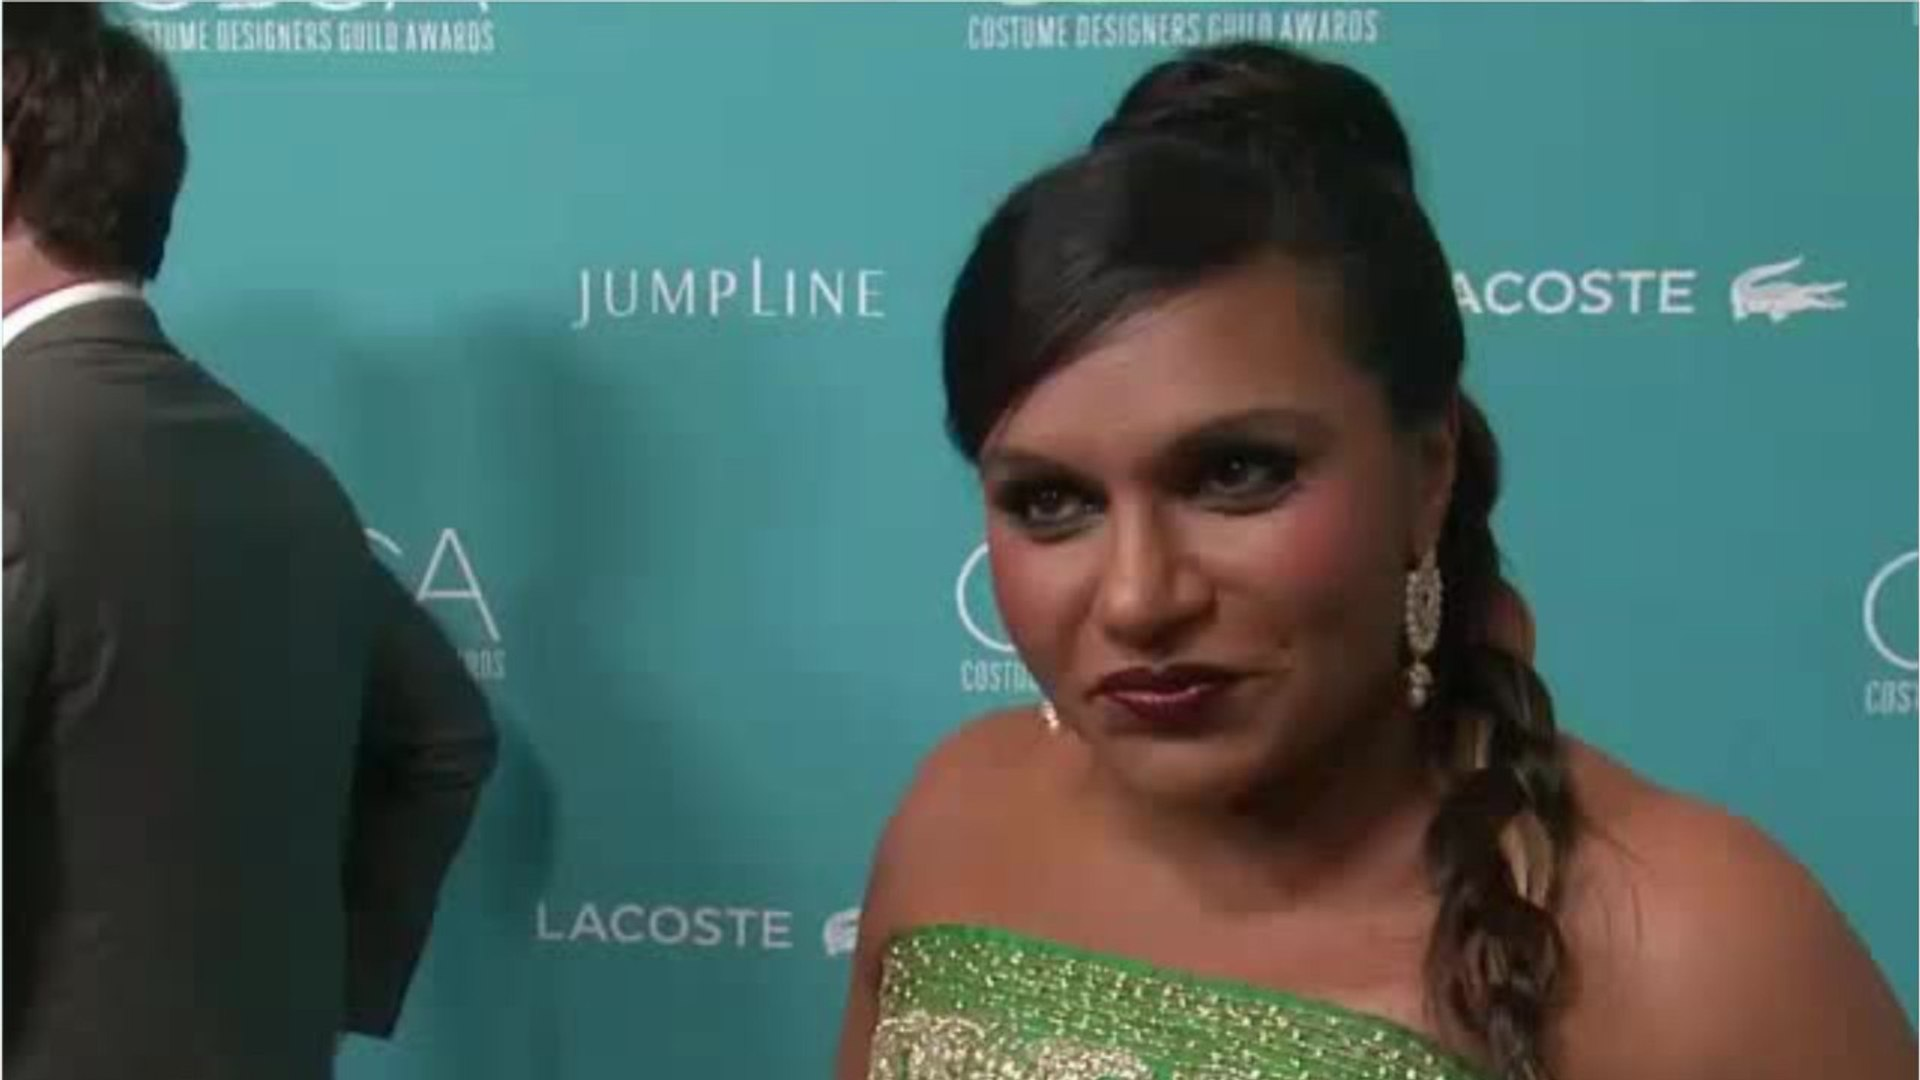 Trailer For Last Season Of 'The Mindy Project' Released